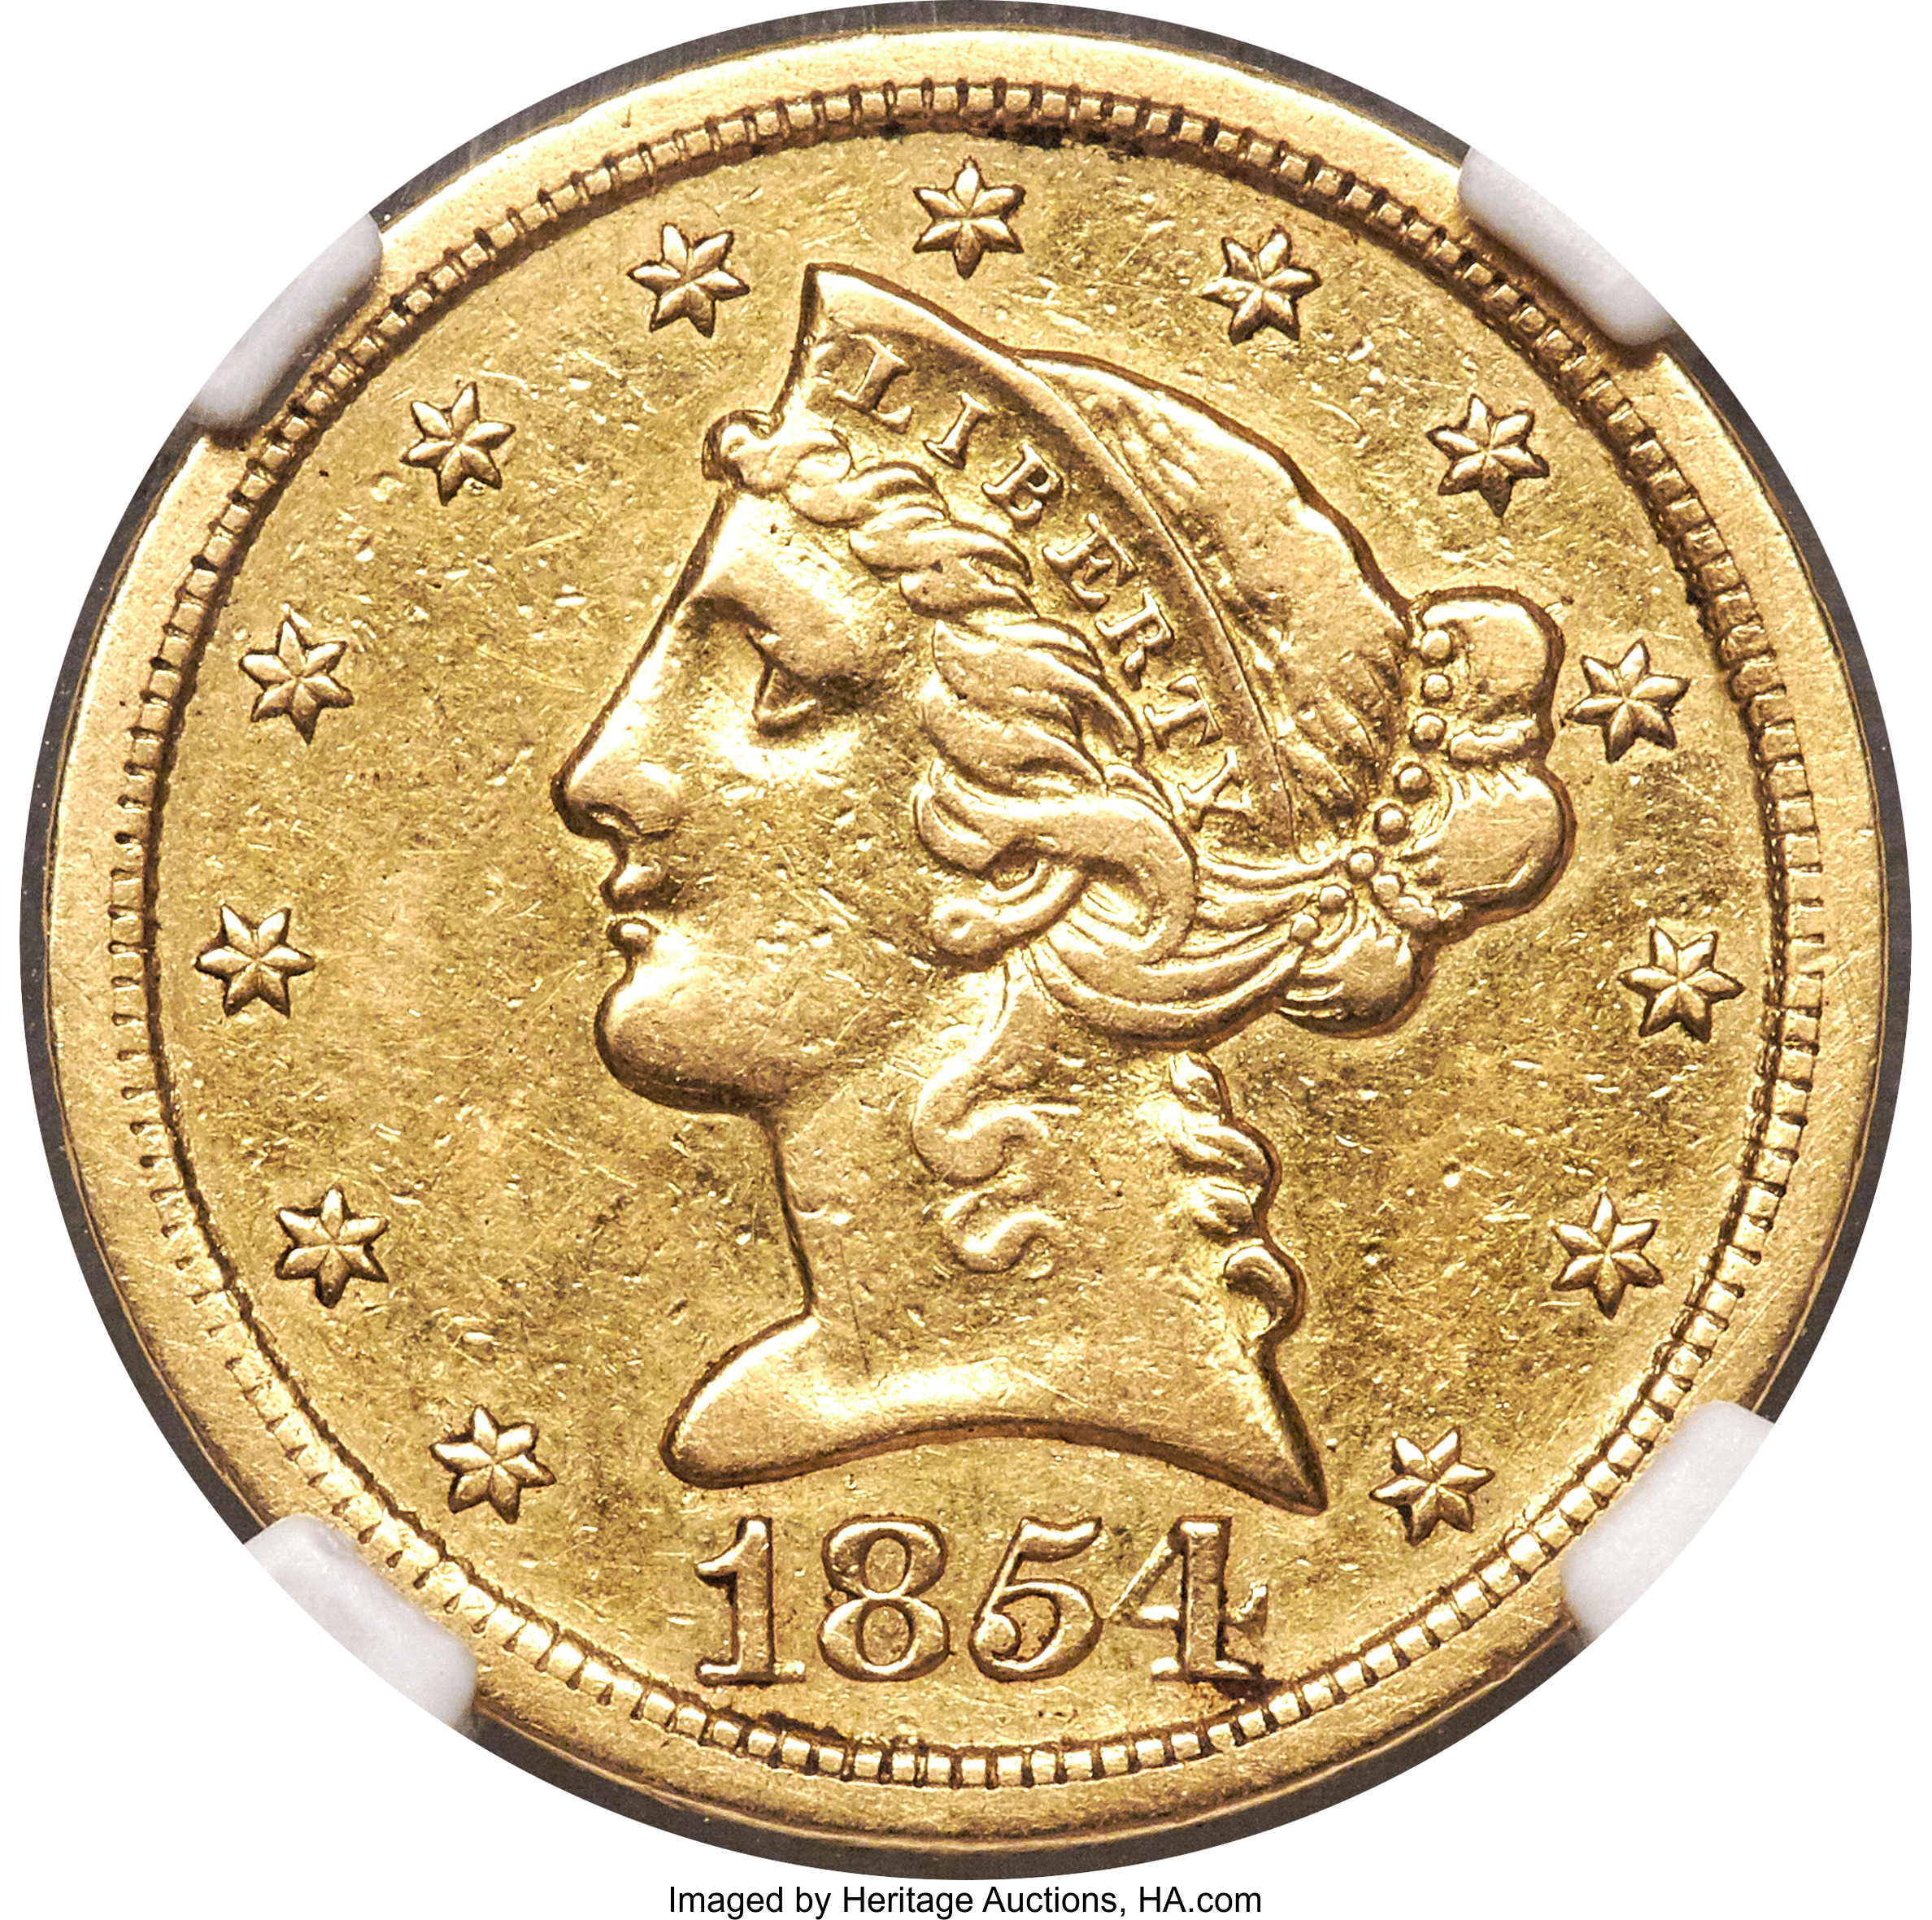 main image for Ultra Rare 1854-S $5 Gold Coin Acquired By David Lawrence Rare Coins and John Albanese